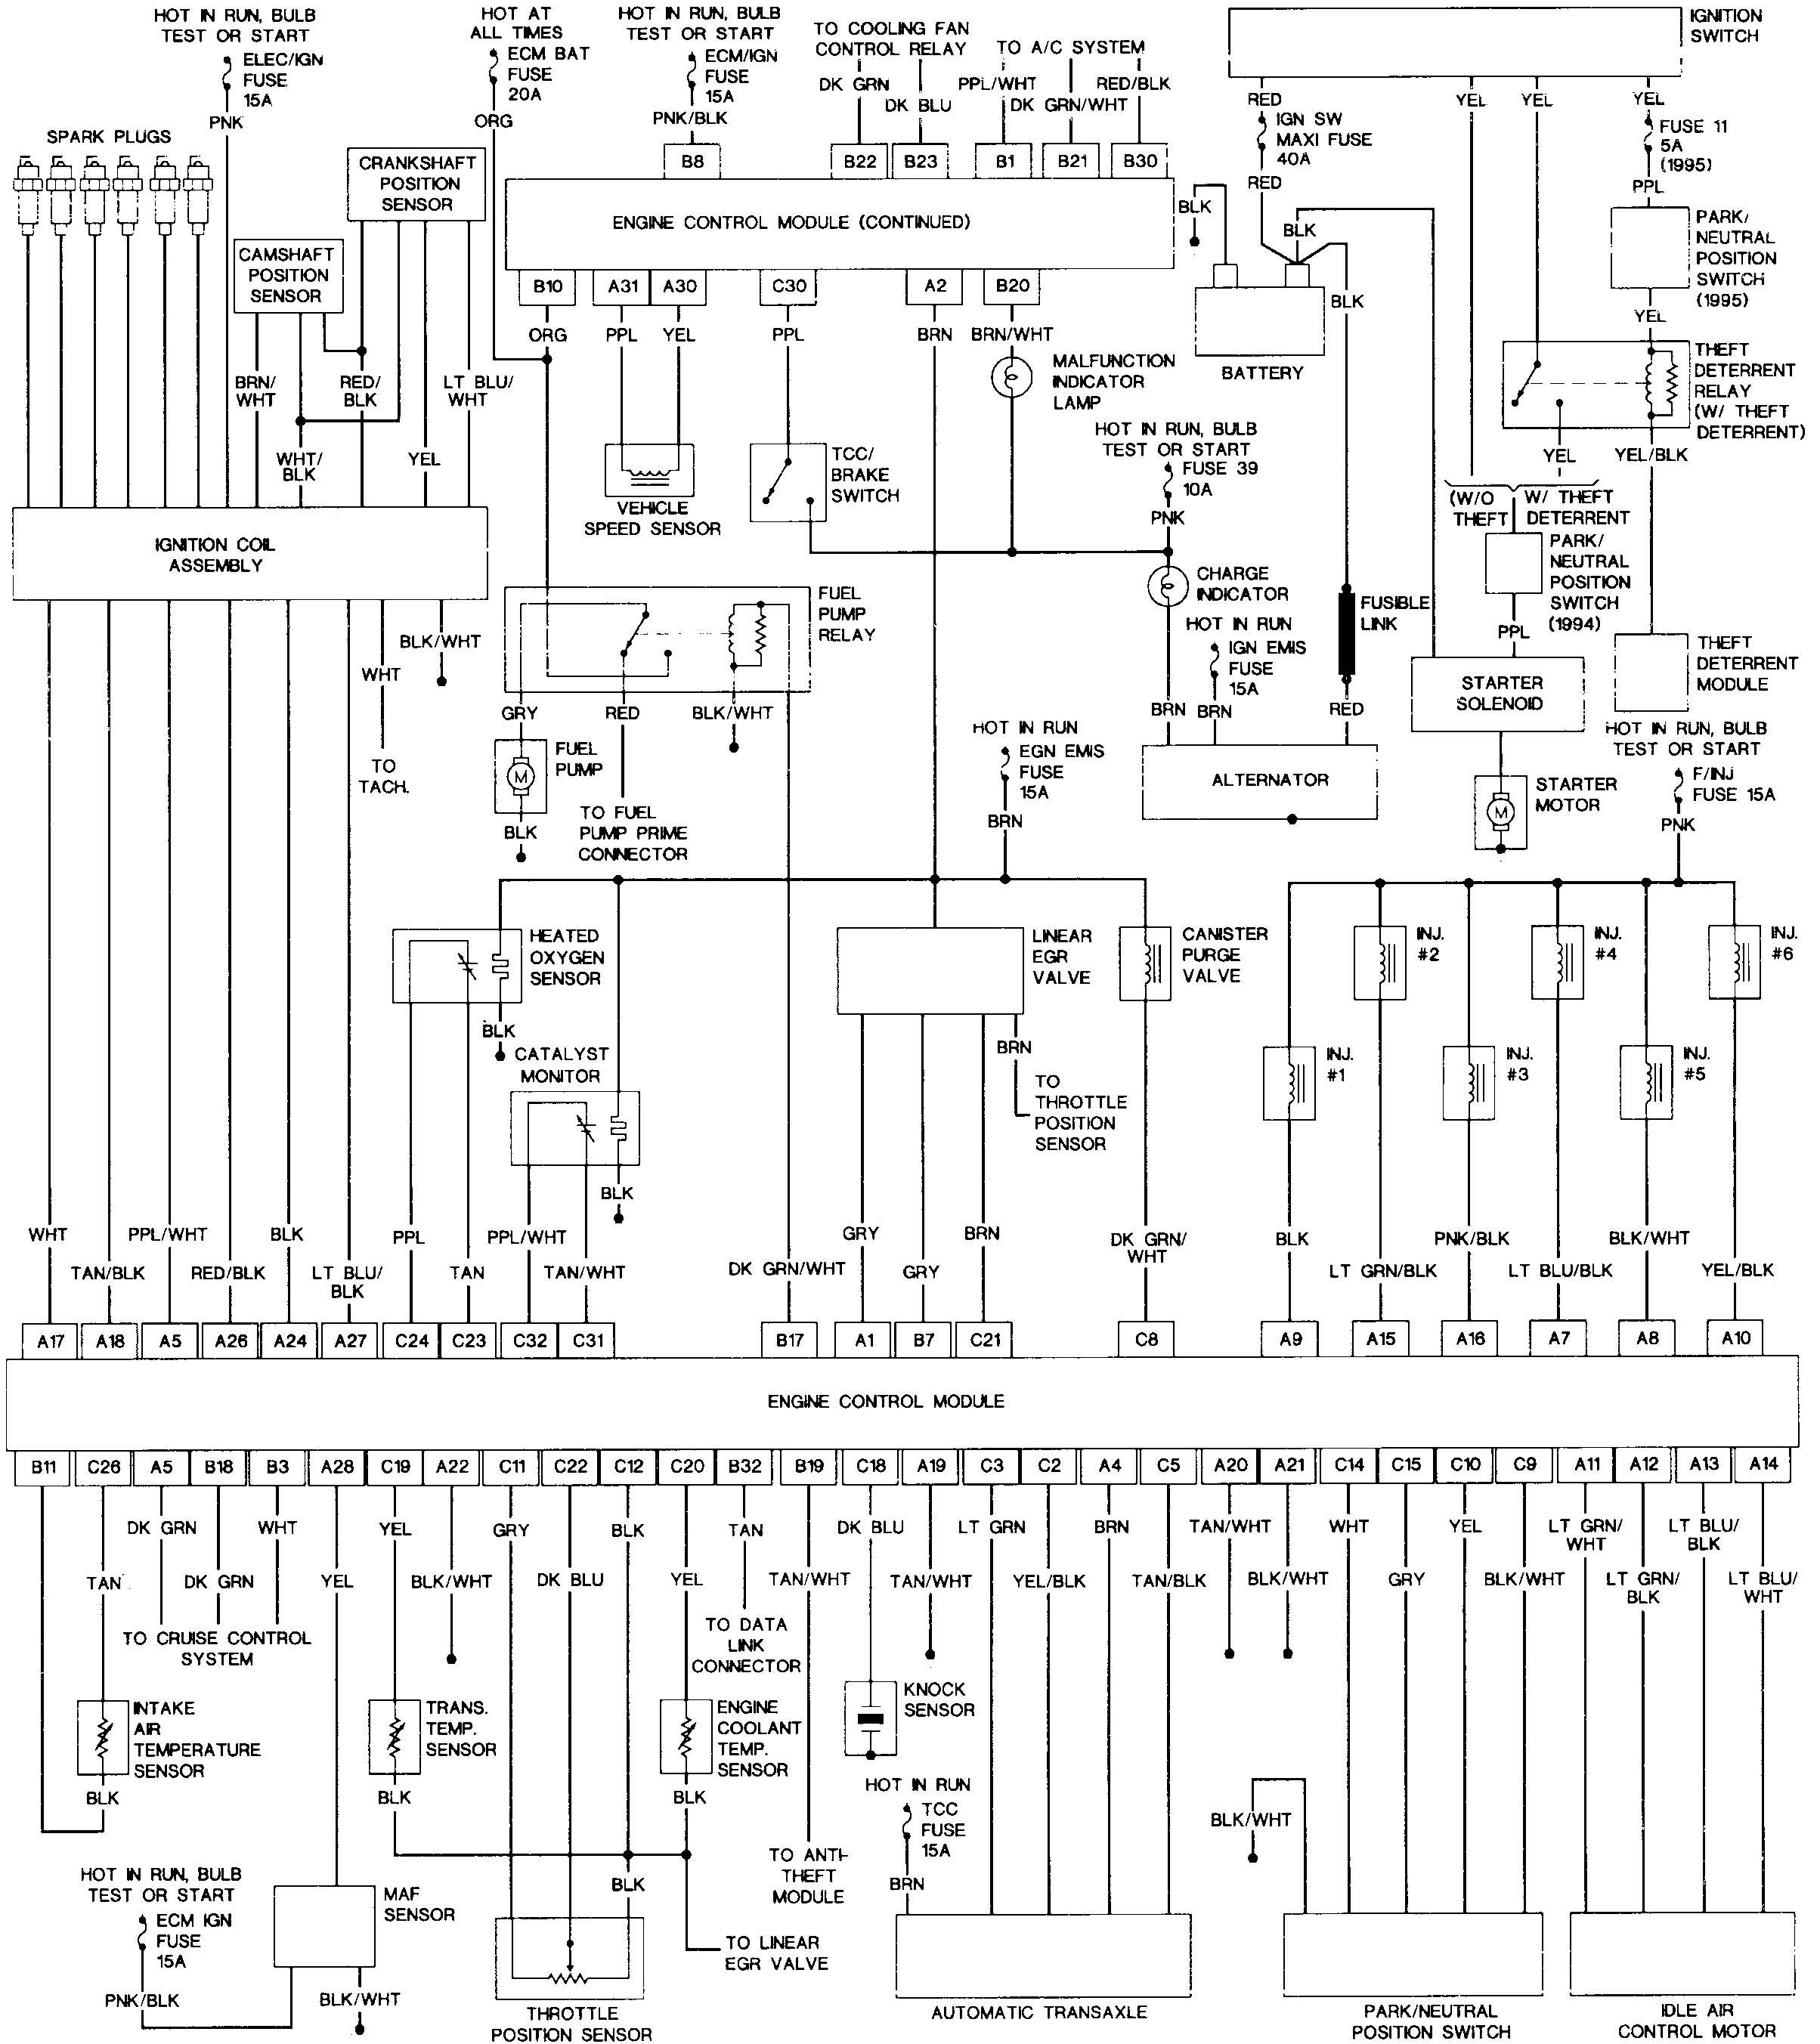 buick 3800 wiring diagram reinvent your wiring diagram u2022 rh kismetcars  co uk buick rendezvous radio wiring diagram 2006 buick rendezvous wiring  diagram